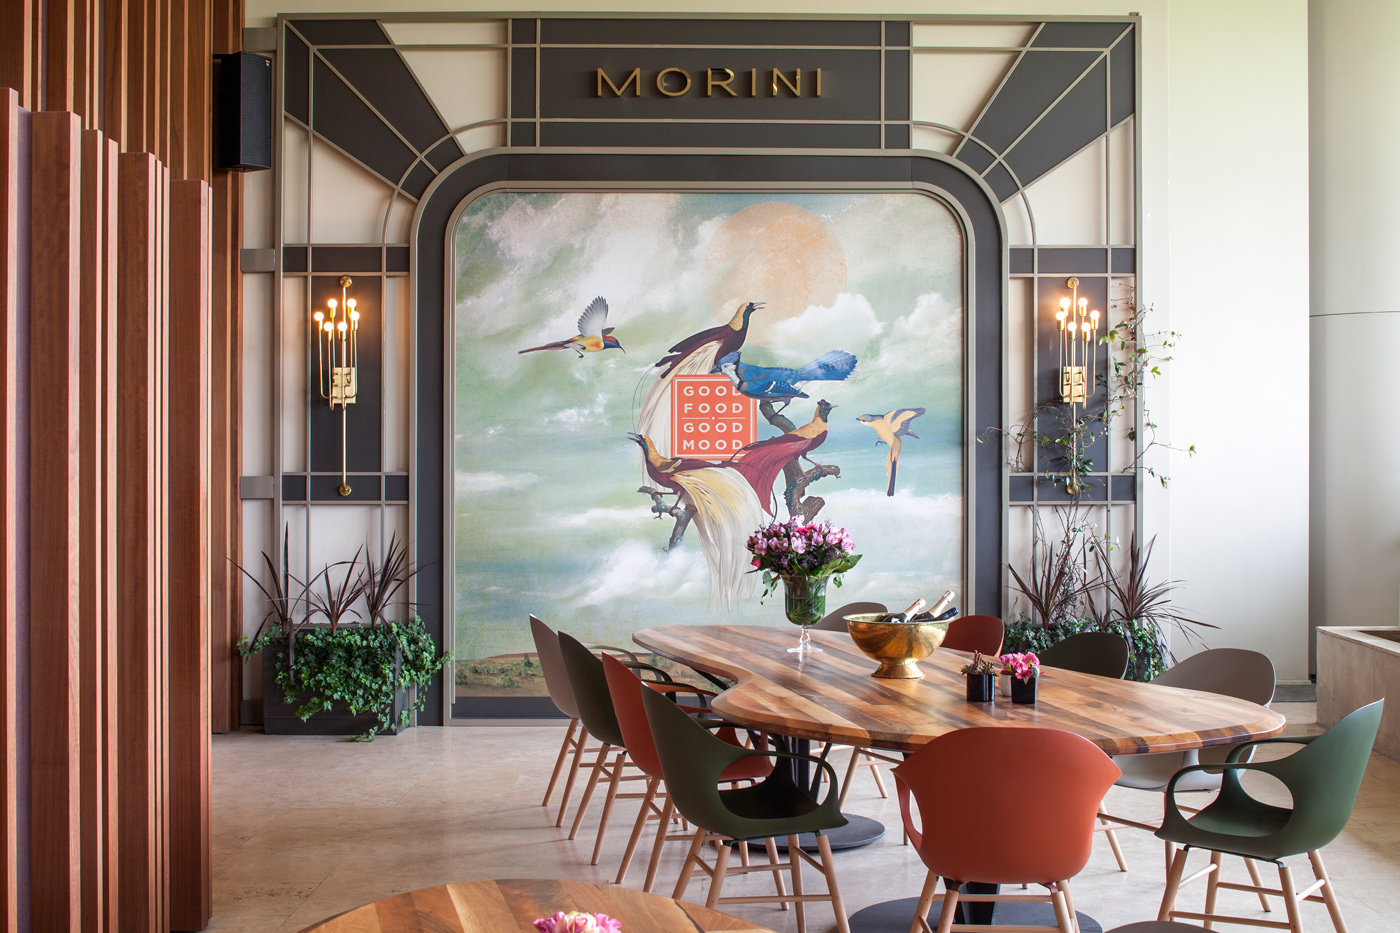 Morini Restaurant Photography